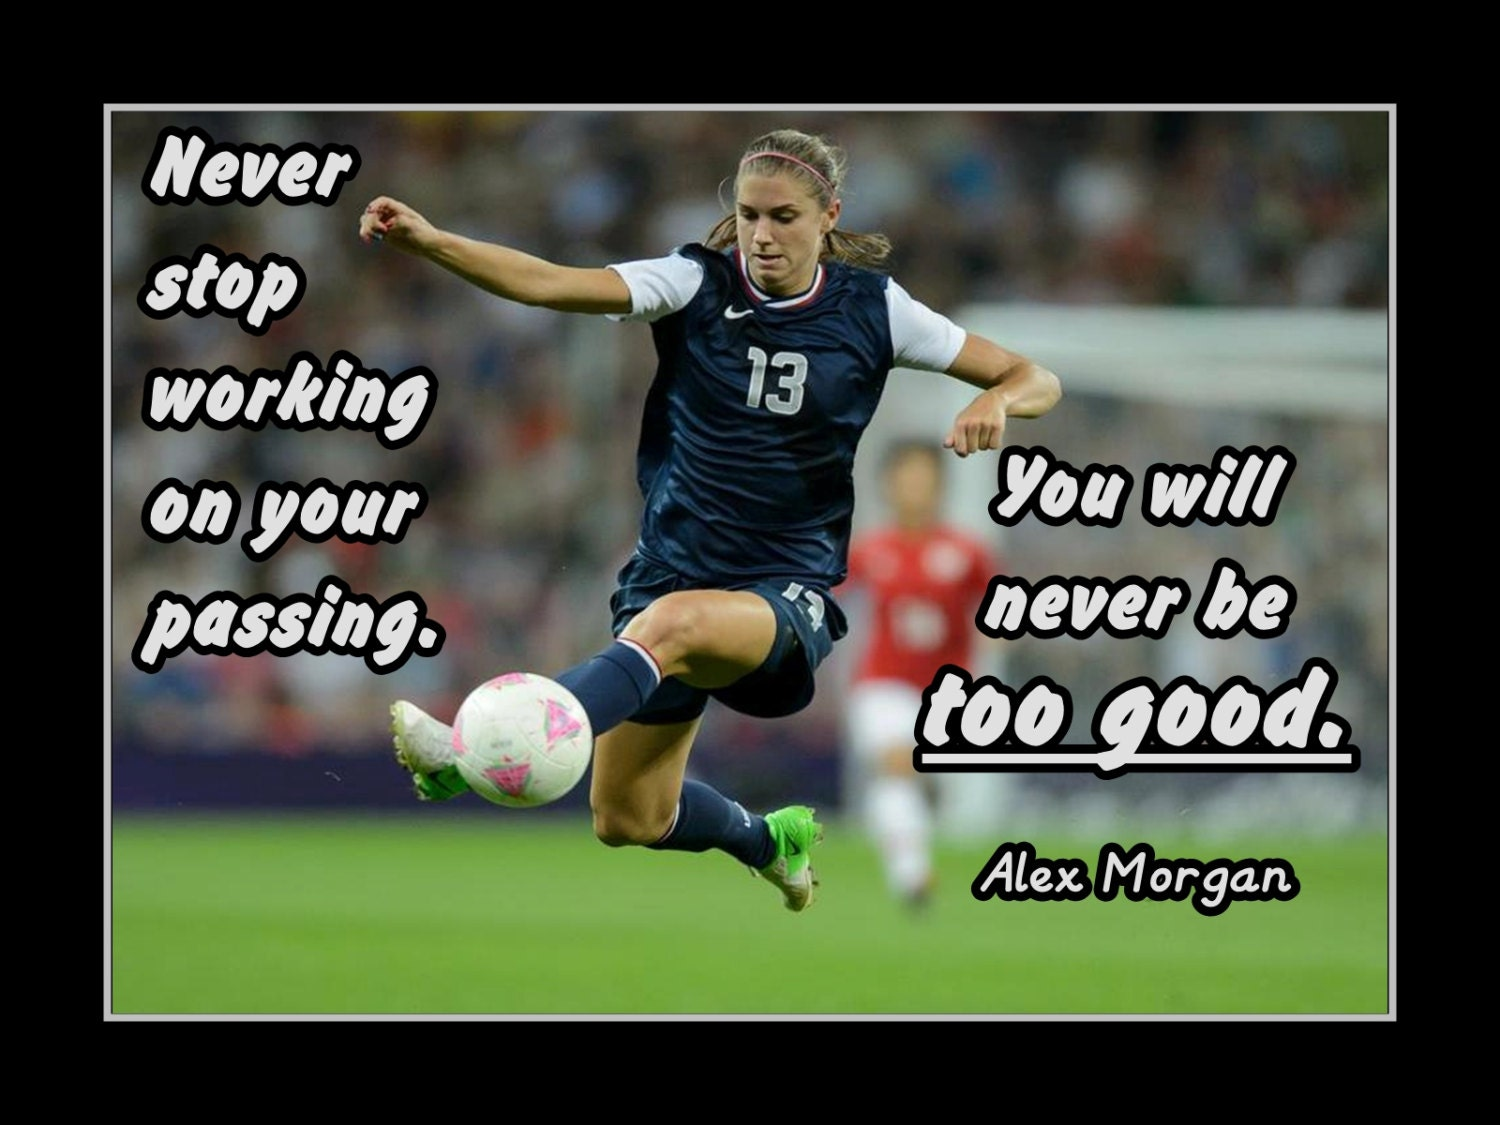 Soccer Poster Alex Morgan Photo Quote Wall Art 5x7 By ArleyArt